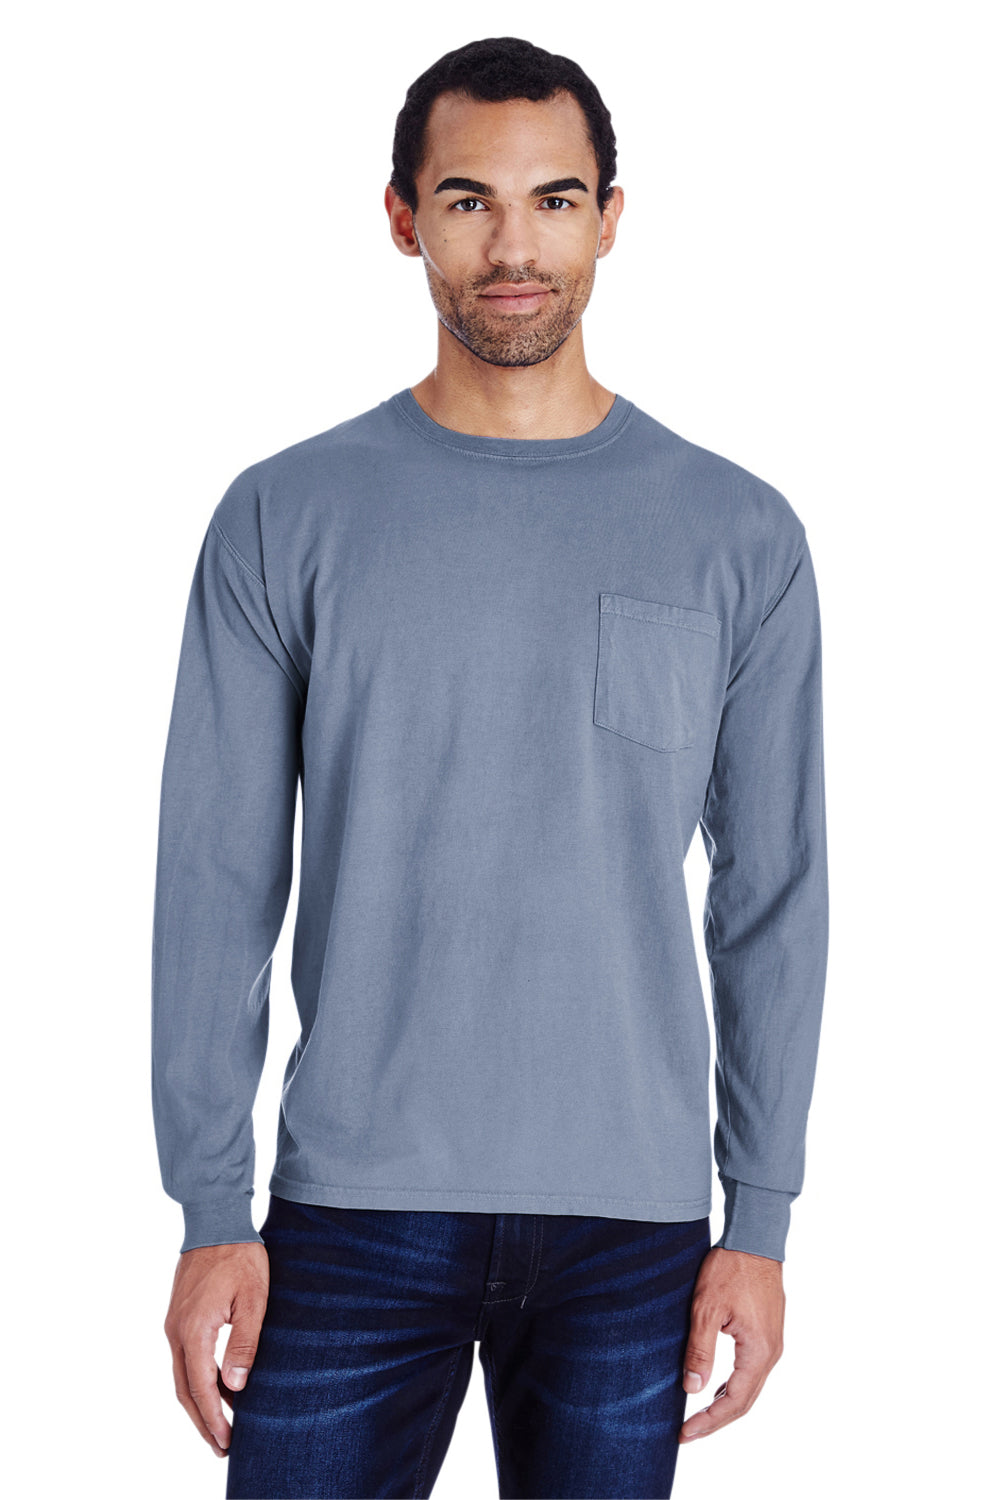 ComfortWash by Hanes GDH250 Long Sleeve Crewneck T-Shirt w/ Pocket Saltwater Blue Front